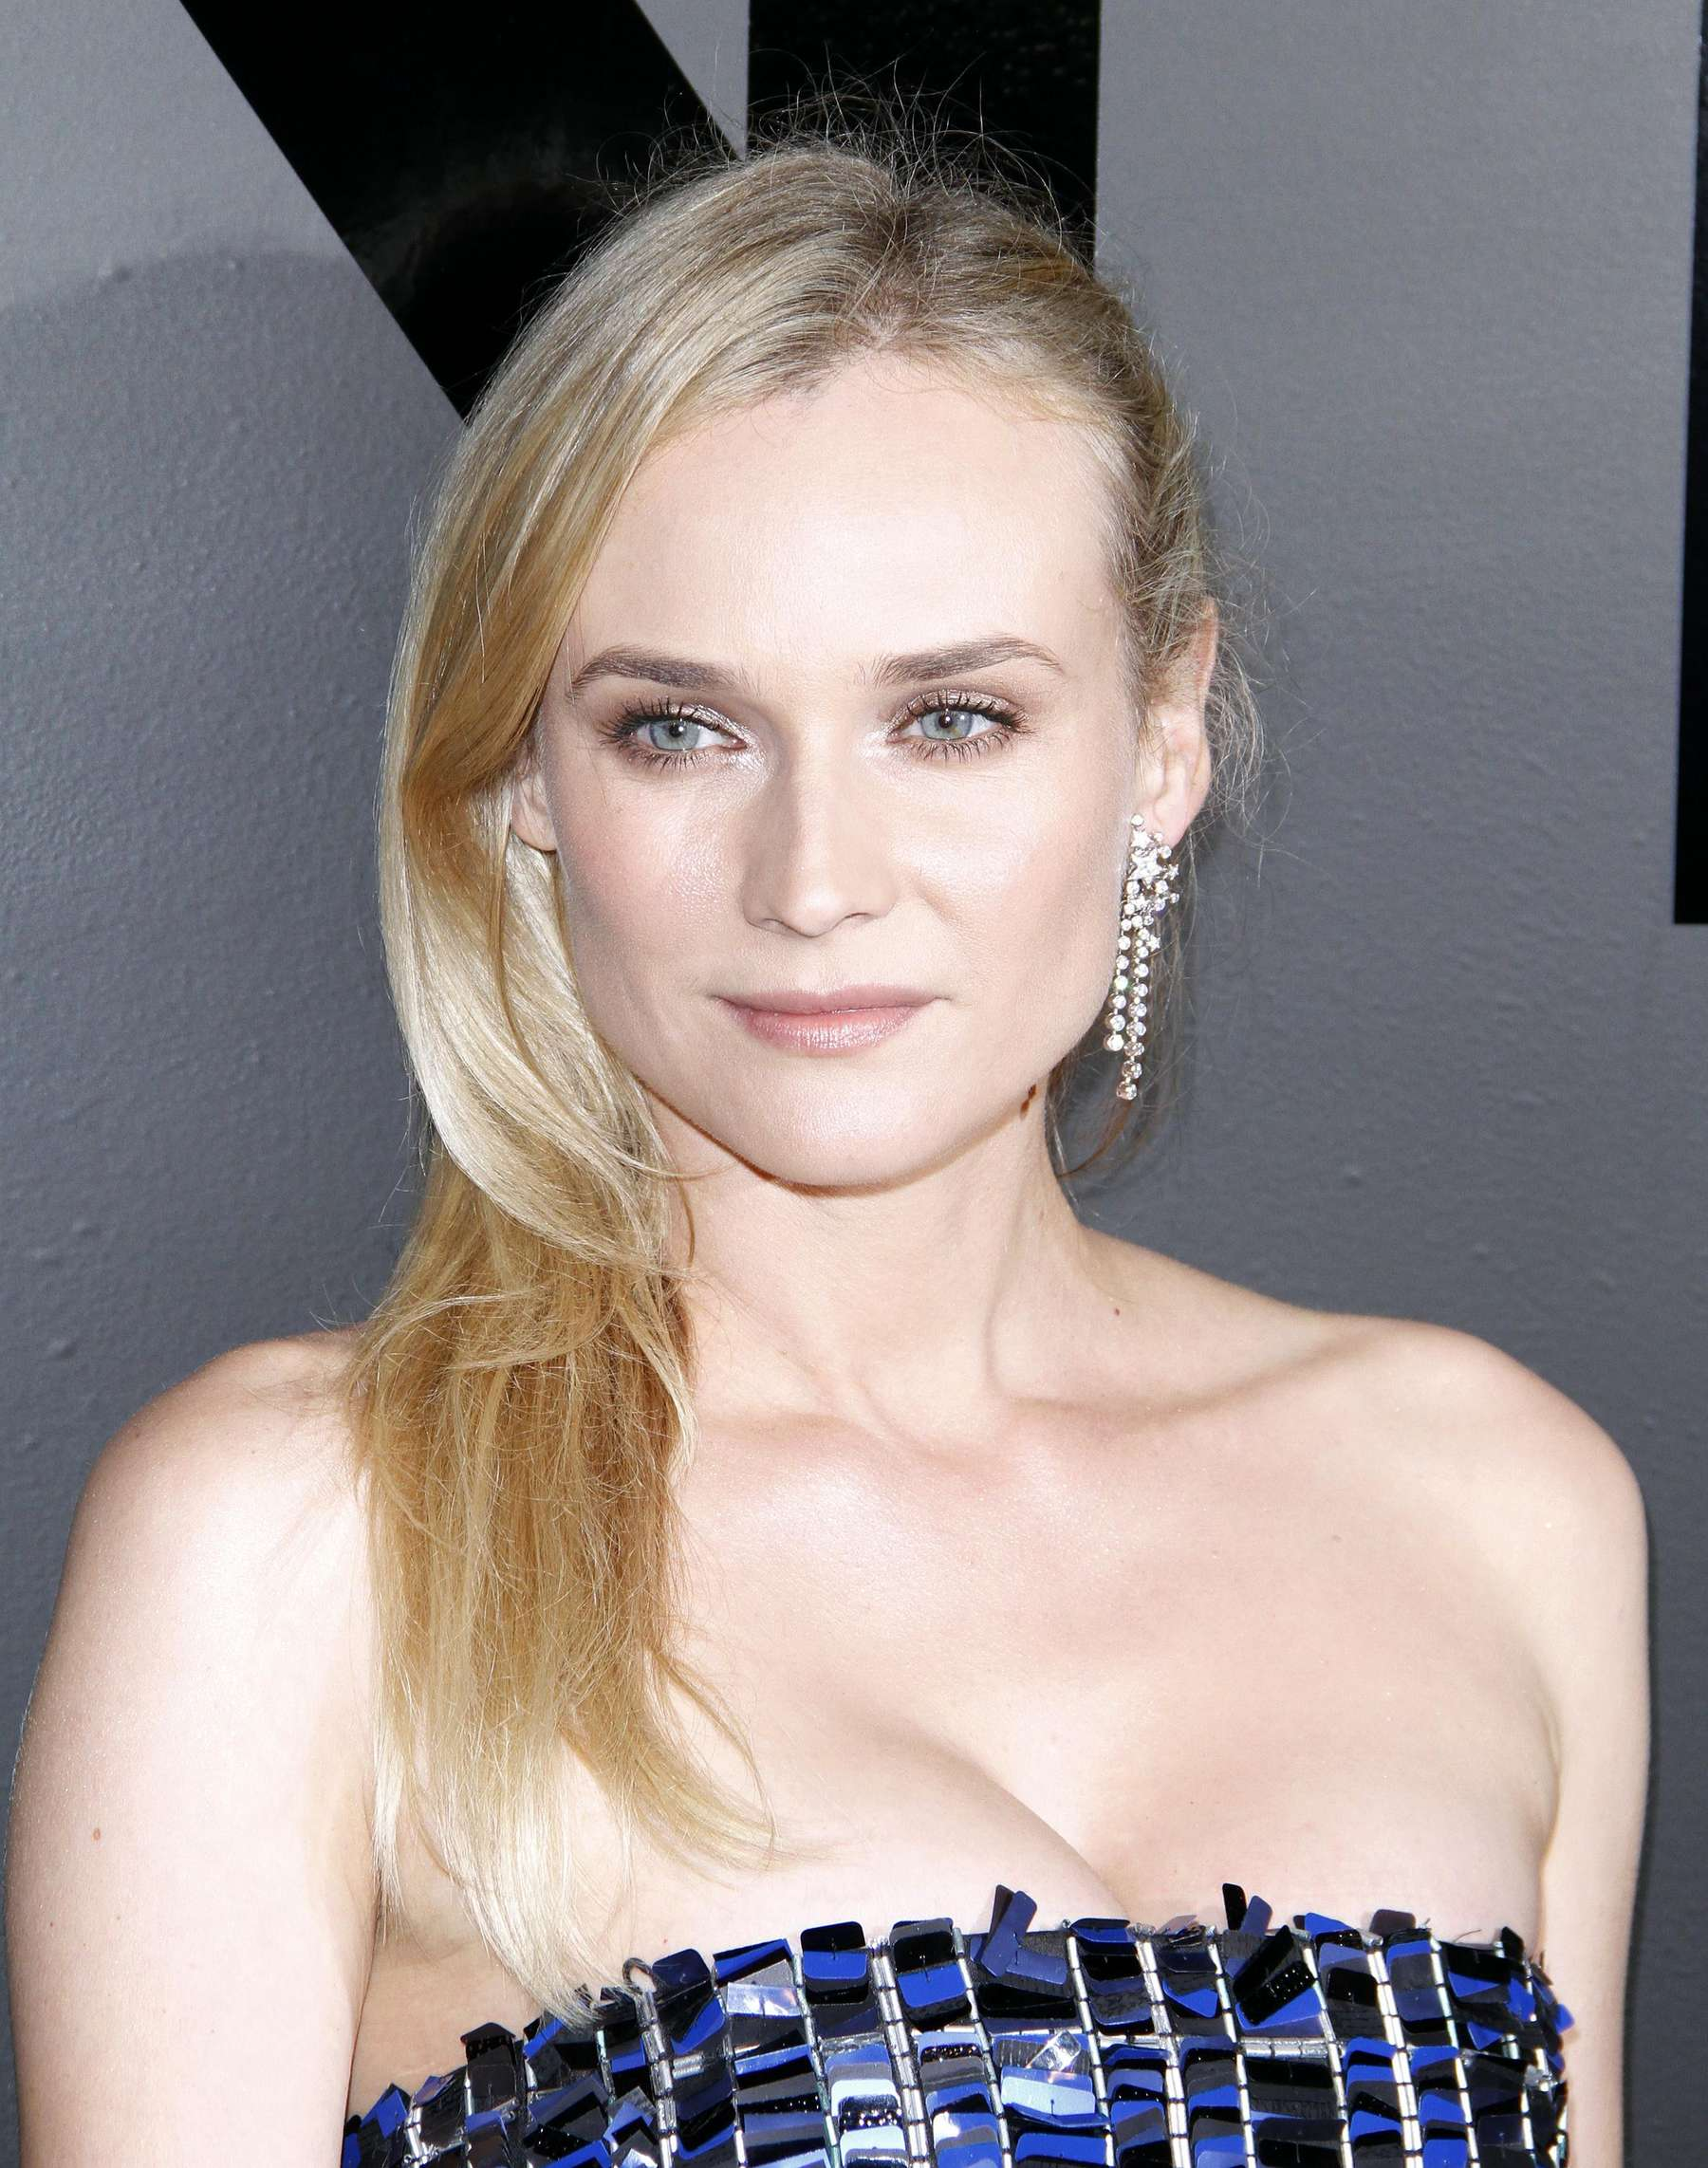 Cleavage Diane Kruger nude (51 photos), Pussy, Paparazzi, Feet, braless 2018